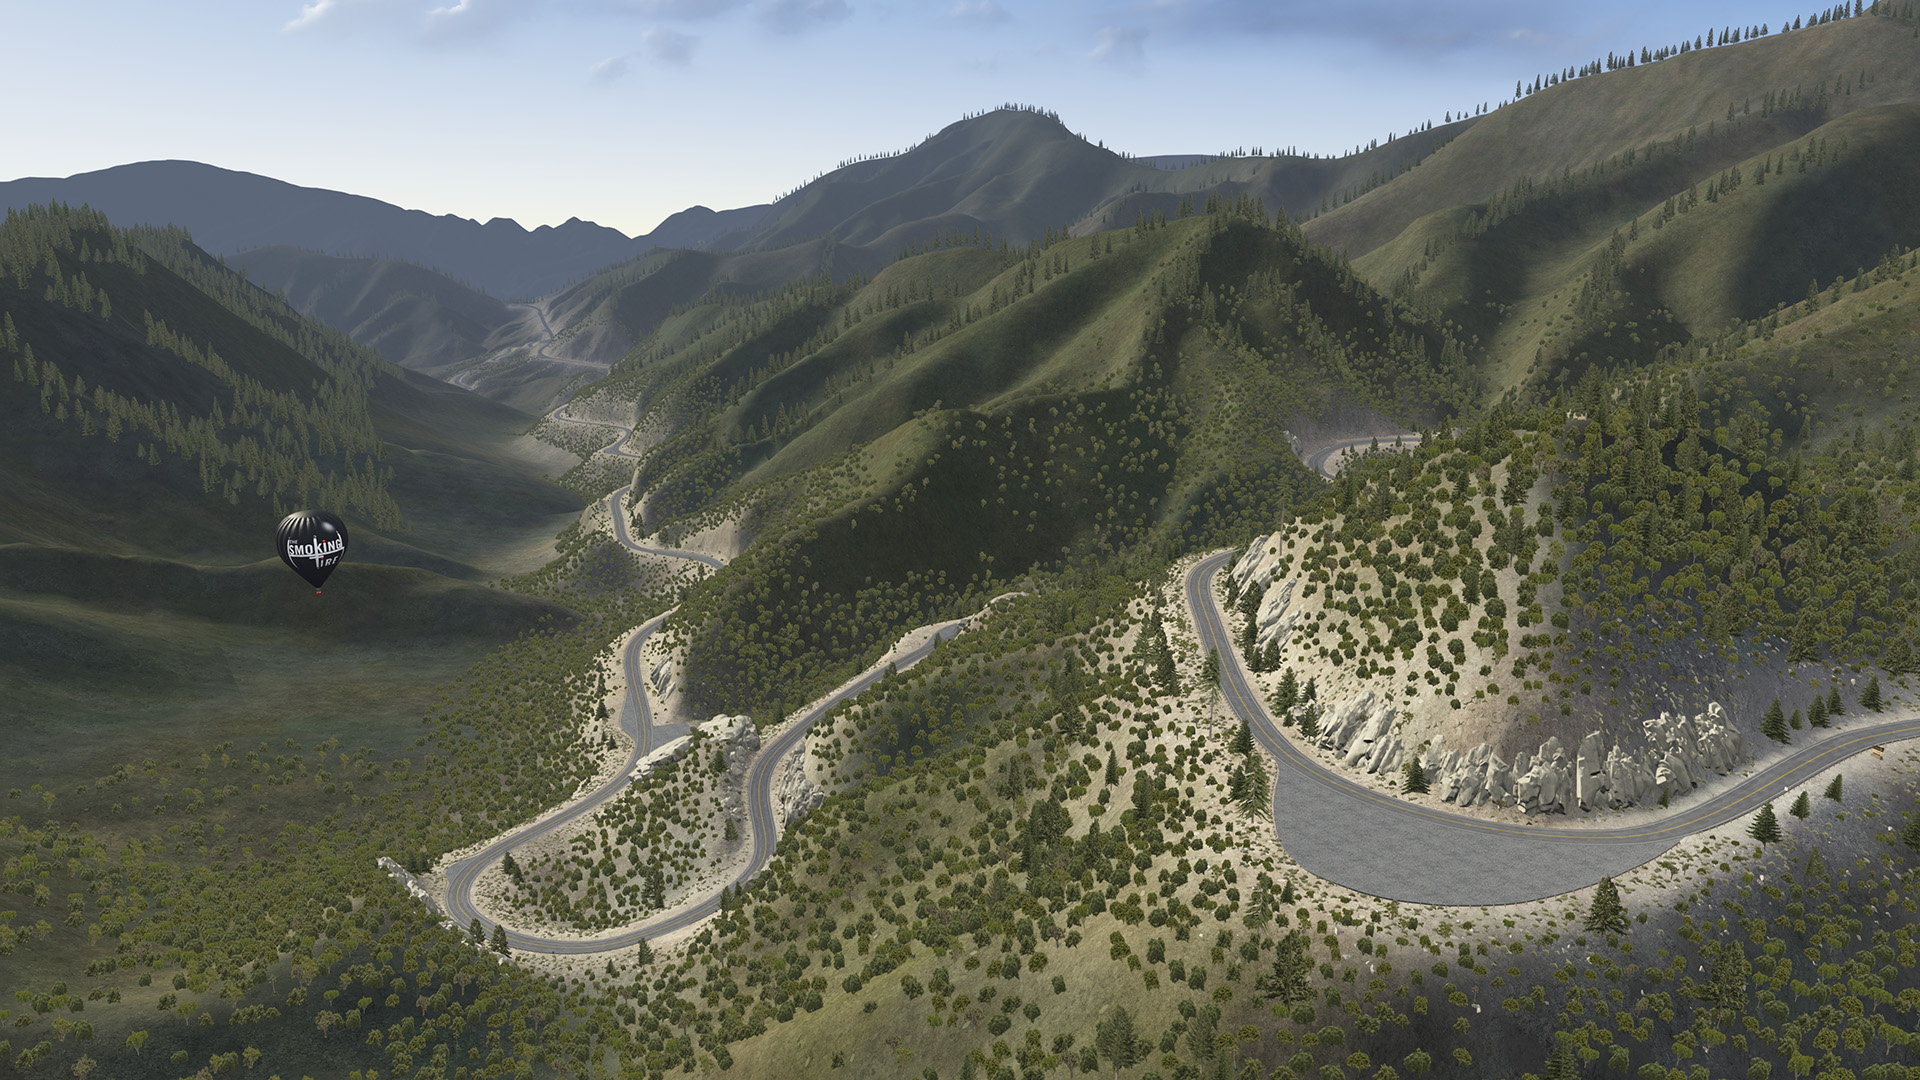 "LA Canyons<br>Trees & Props<br>Assetto Corsa<a class="""" href=""https://www.racedepartment.com/downloads/la-canyons.15067/"" target=""blank""><span class=""photo-title""><br>Race Department...</span></a>"